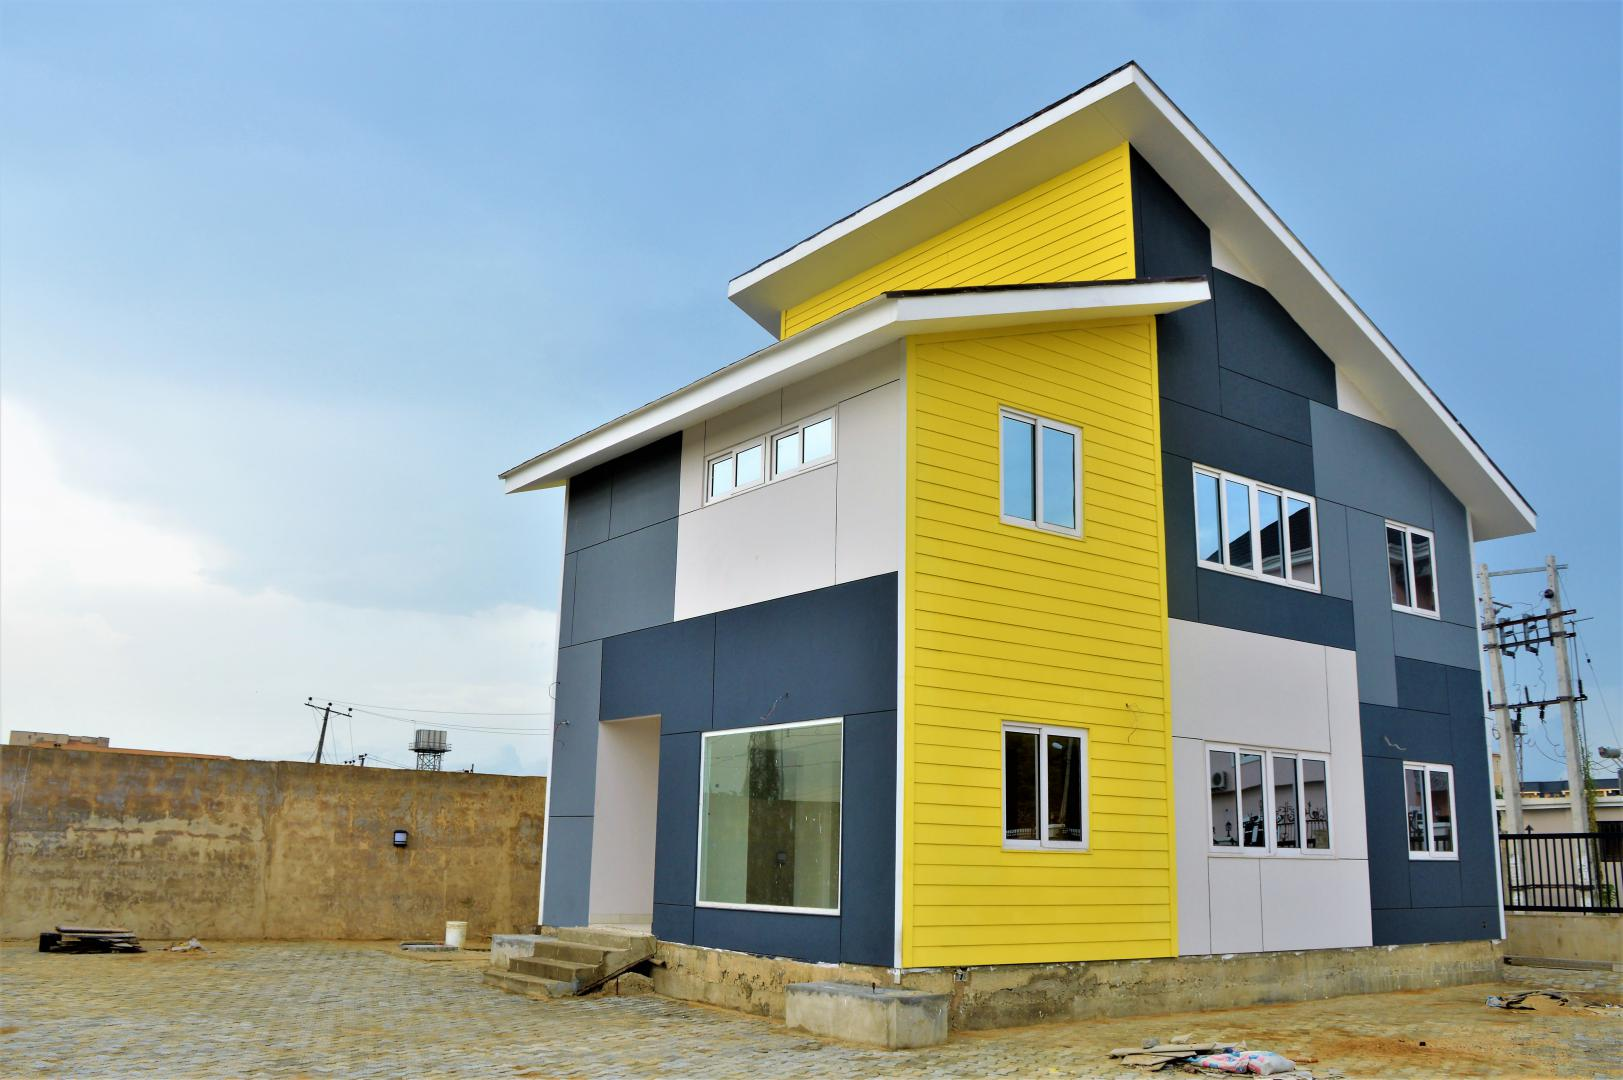 A model home in Lagos, Nigeria by Kalsi Construction using light gauge steel, features a bold yellow accent in it shiplap cladding facade.